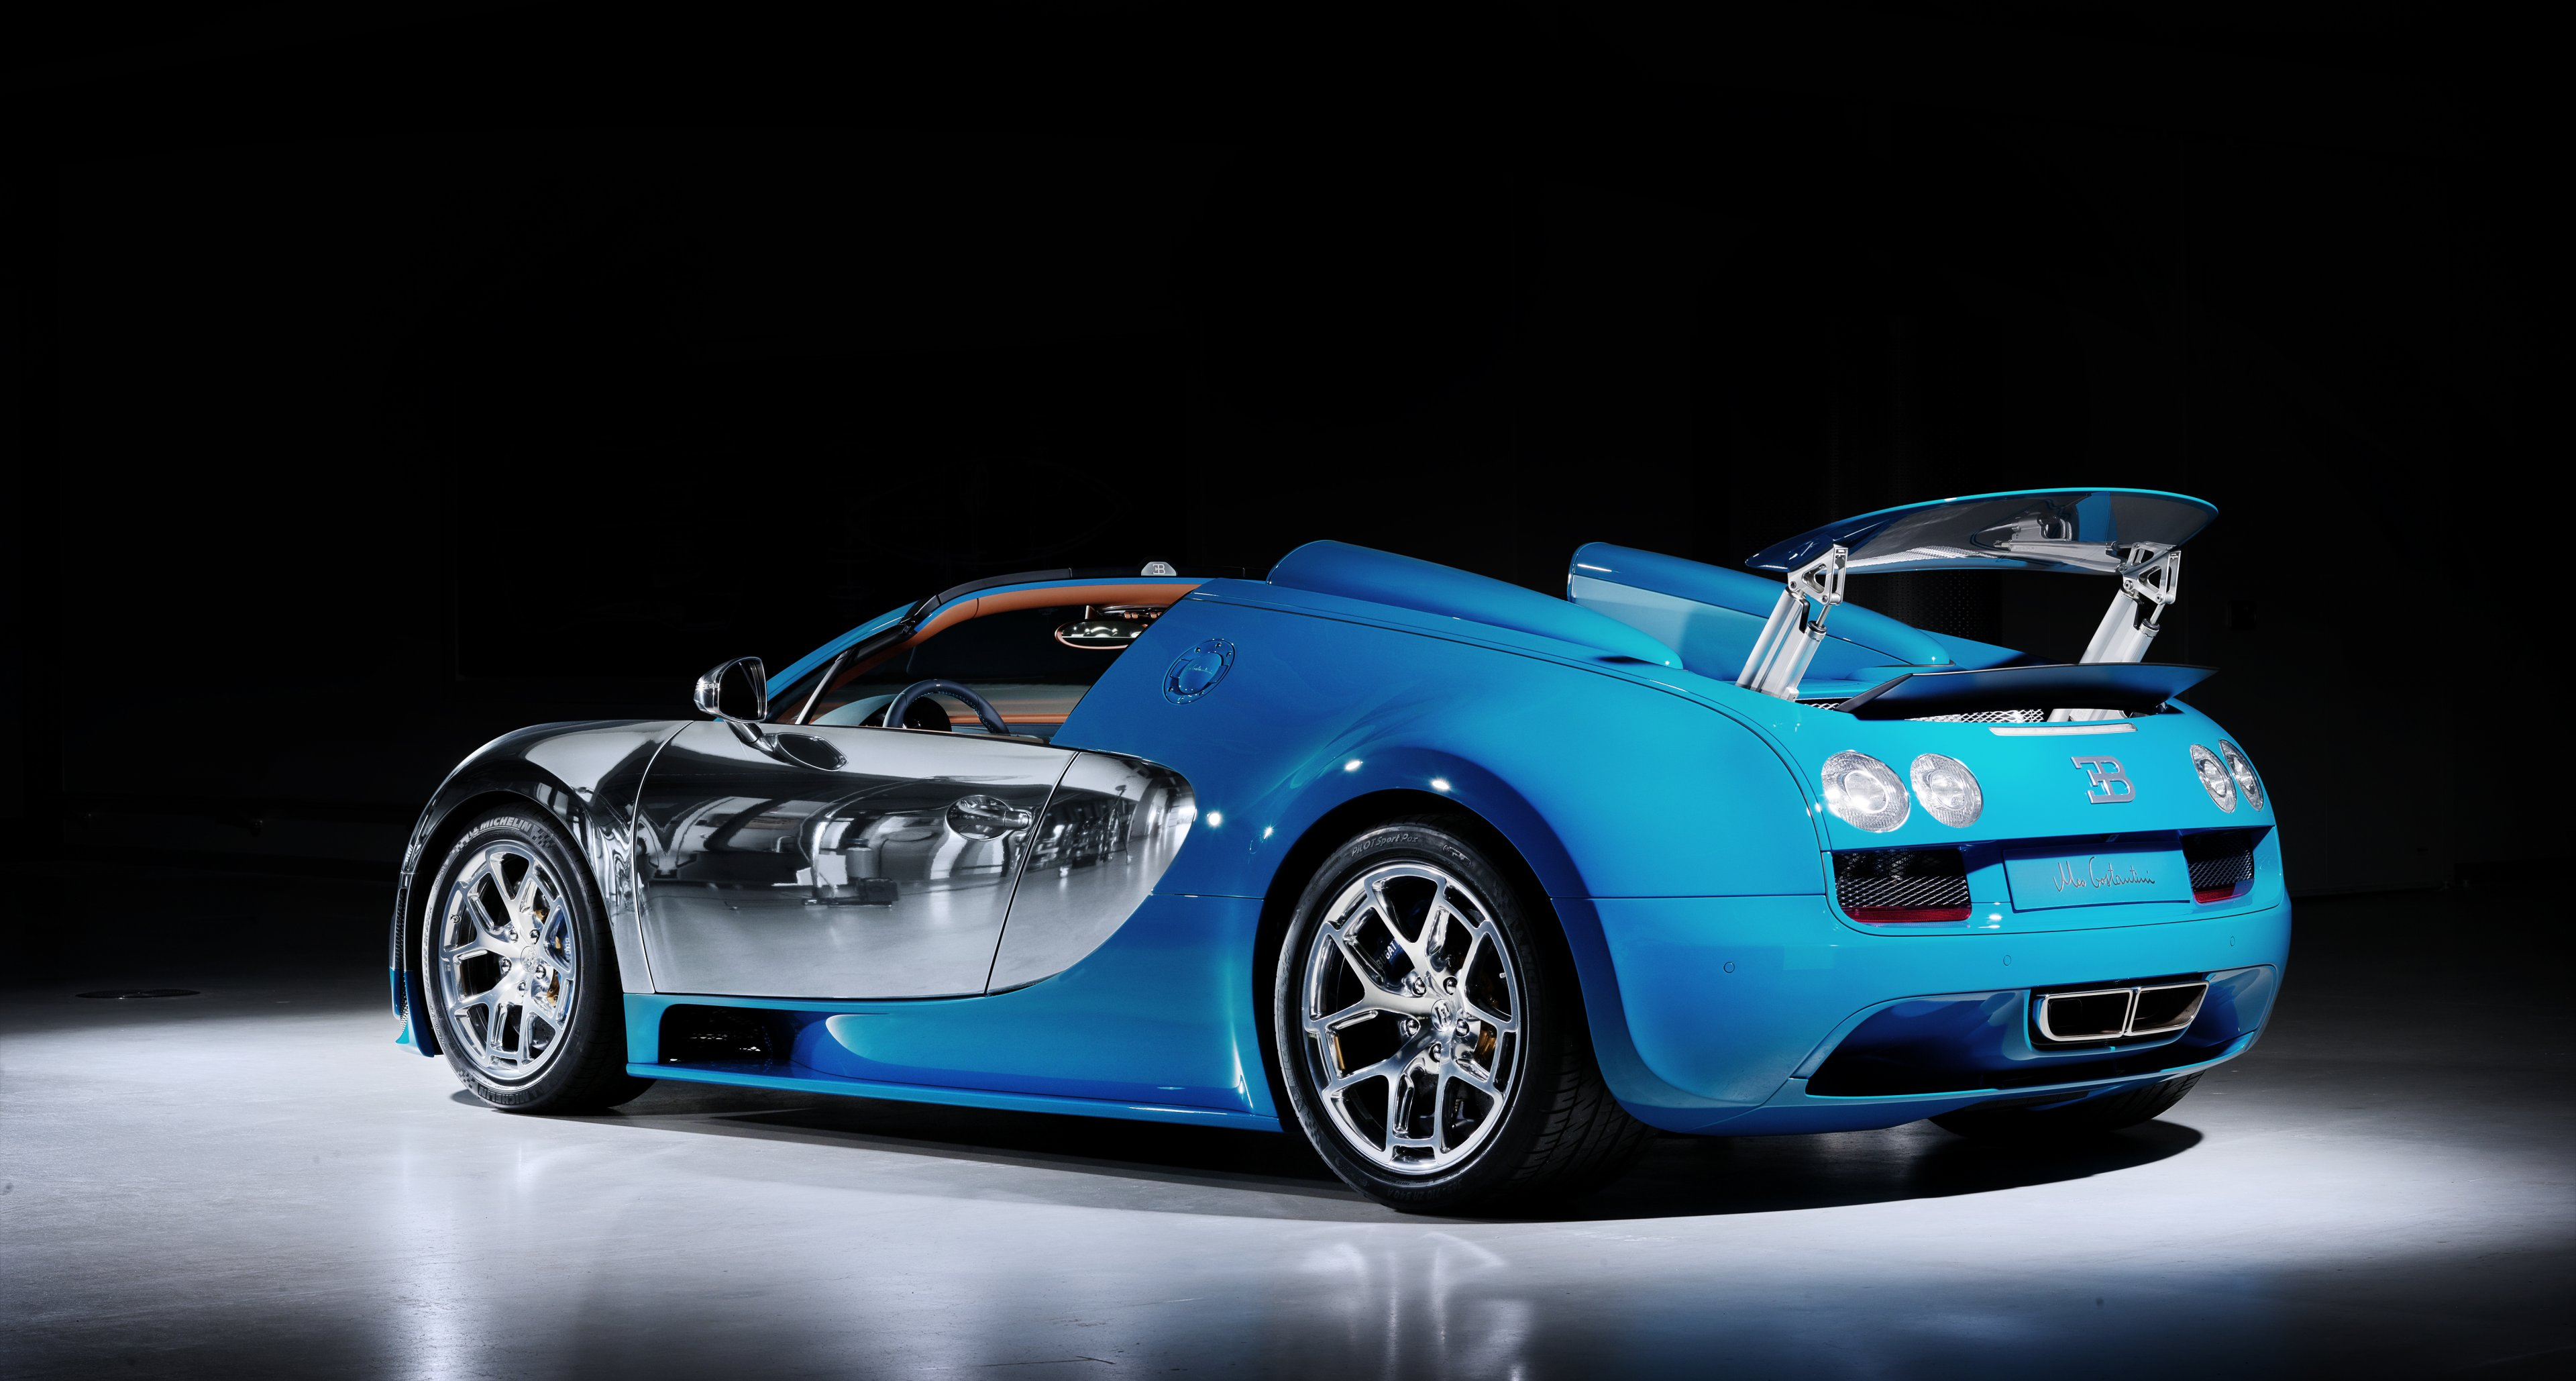 Bugatti Legend Series Number 3 dedicated to Meo Constantini.